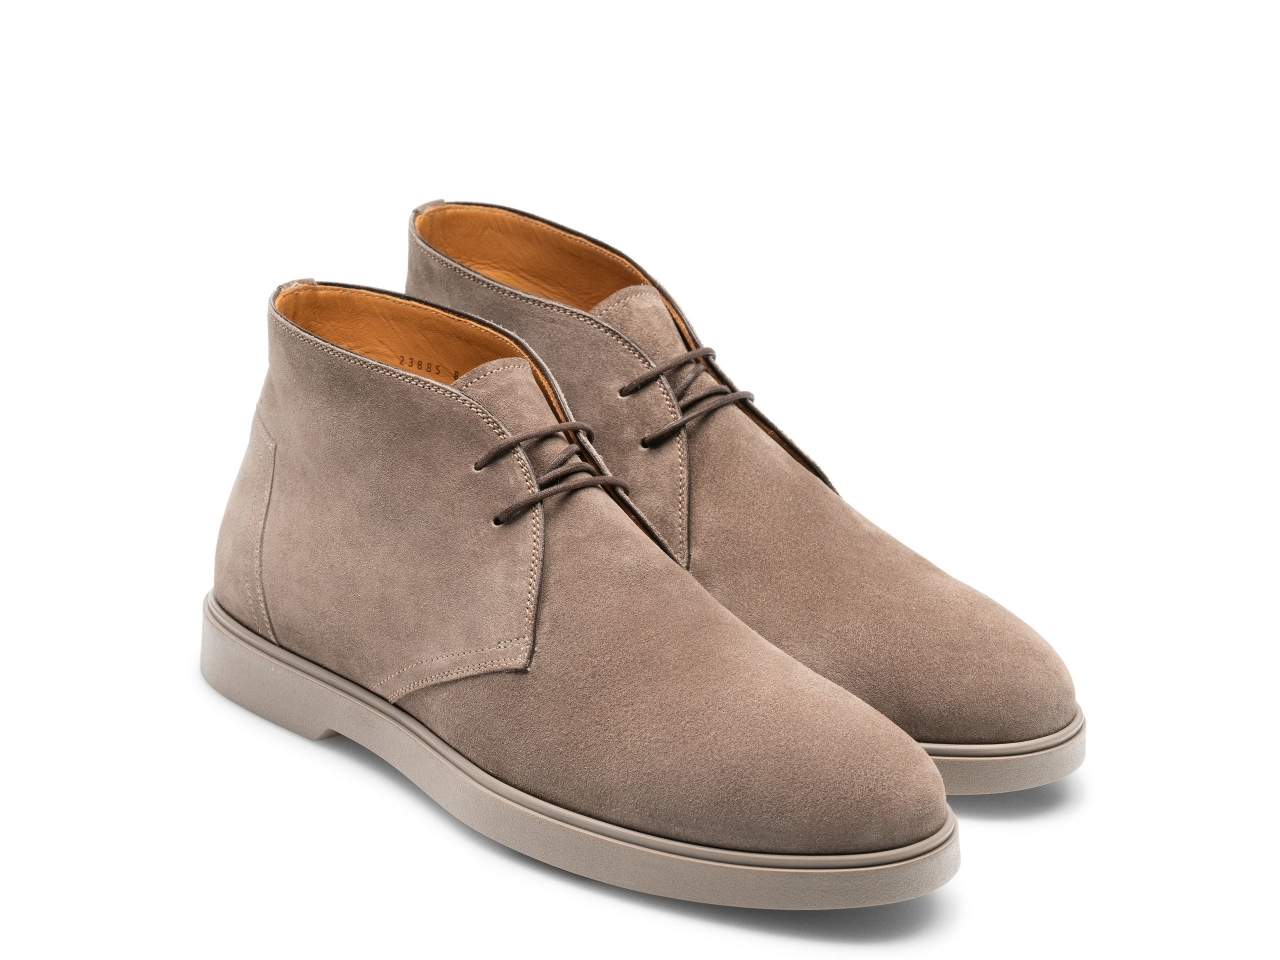 Pair of the Duran Taupe Suede